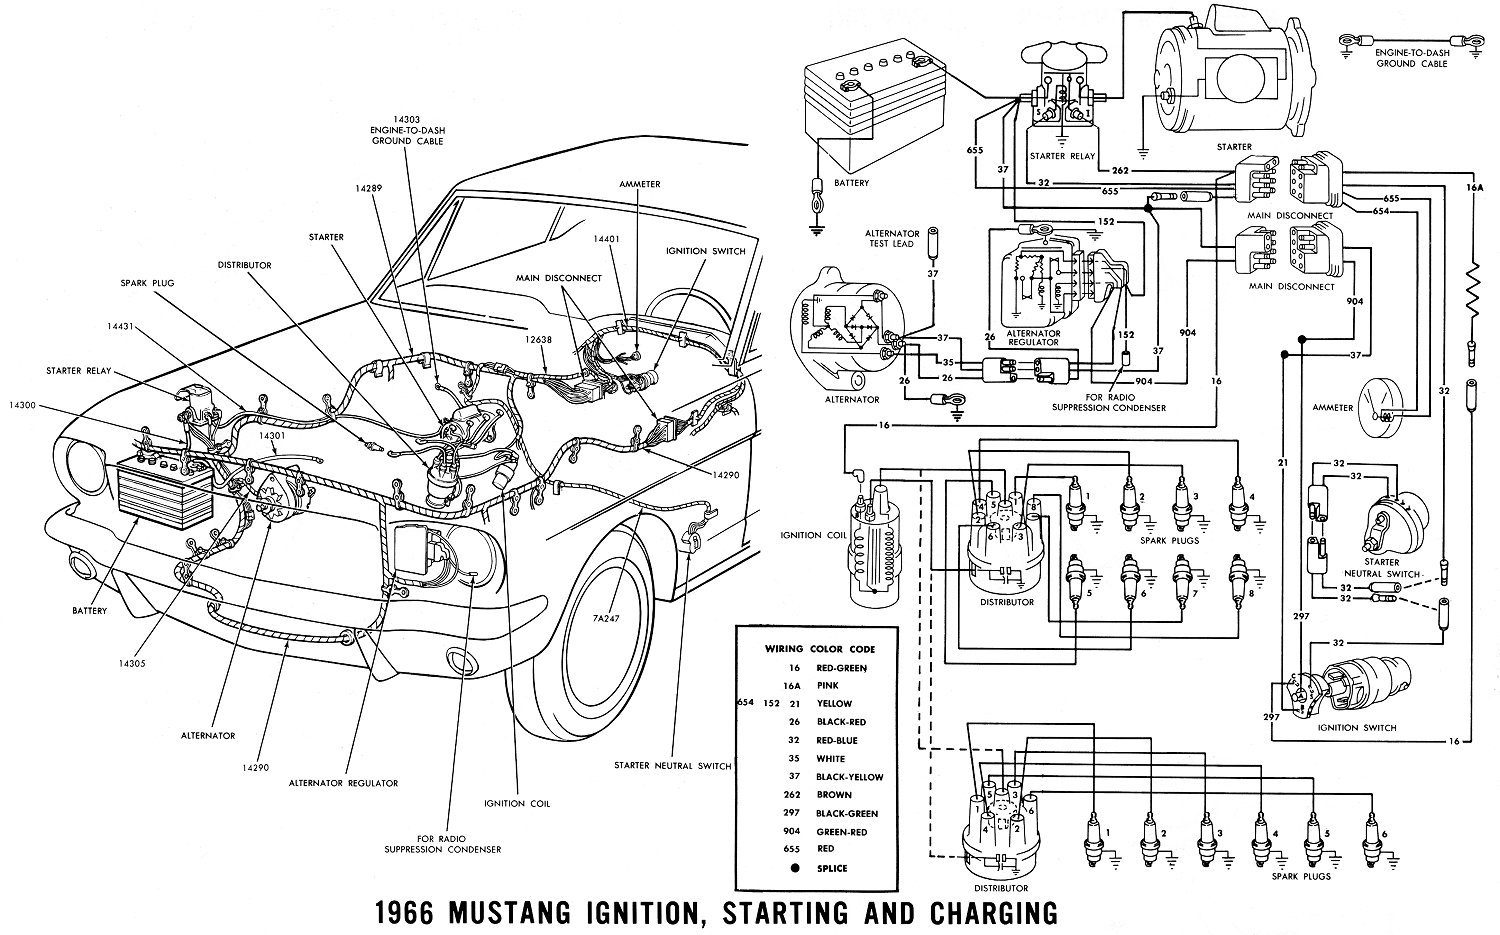 1966 Mustang Starter Solenoid Wiring Diagram 44 Ford Cylonoid 103456d1277938397 Electric Choke Question 66 Forum